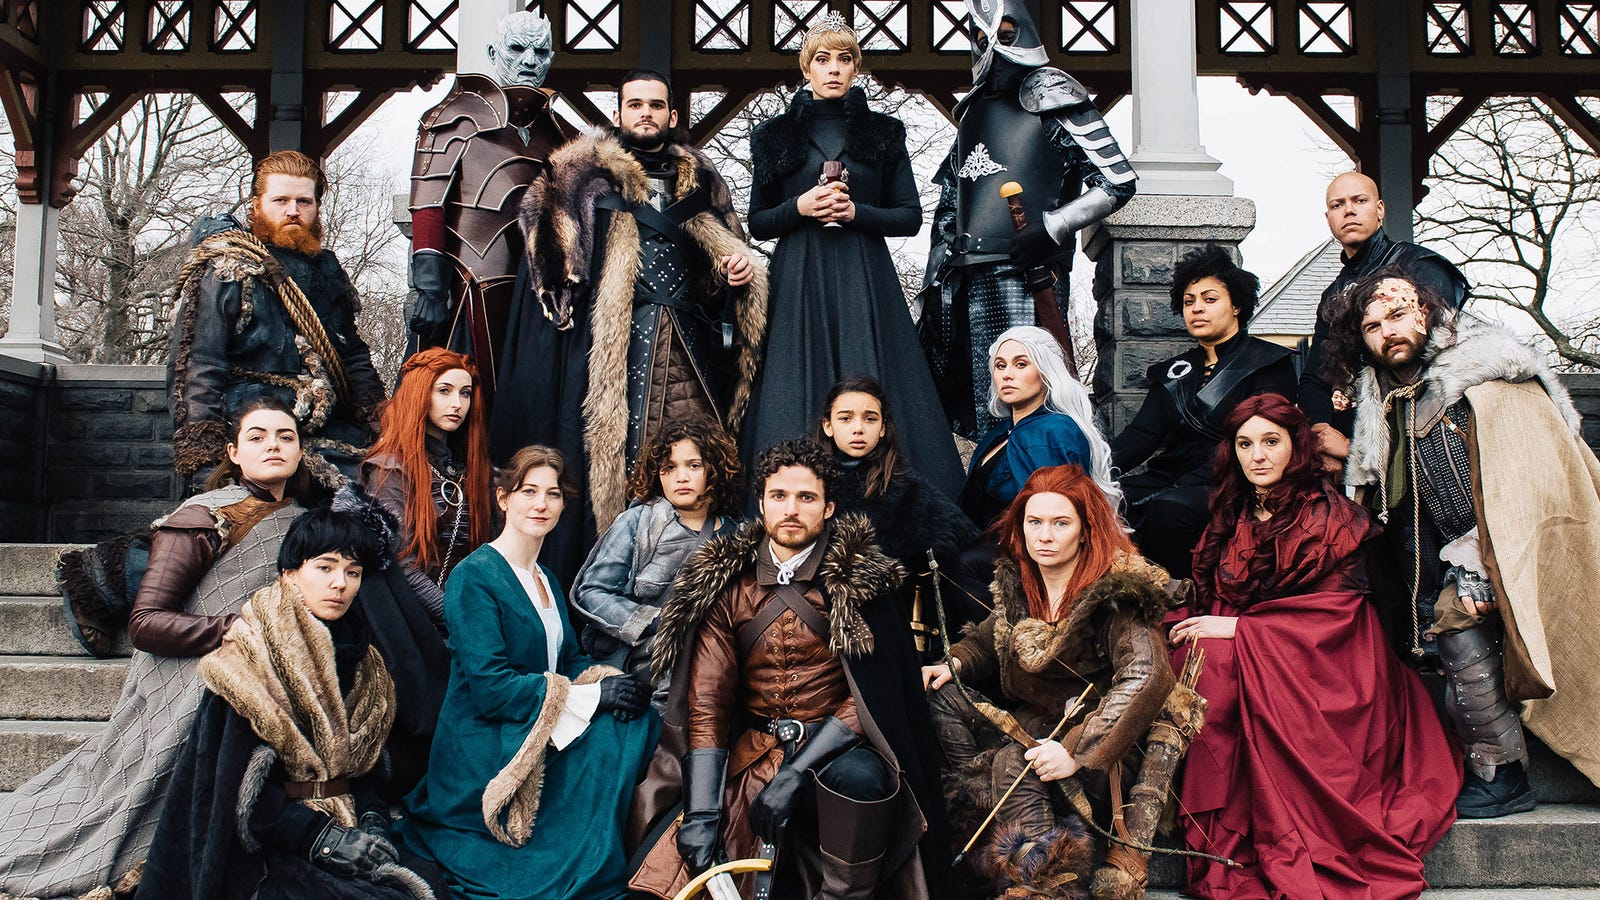 Game Of Thrones Cosplay Shoot Has Everyone (And A Wedding Proposal)